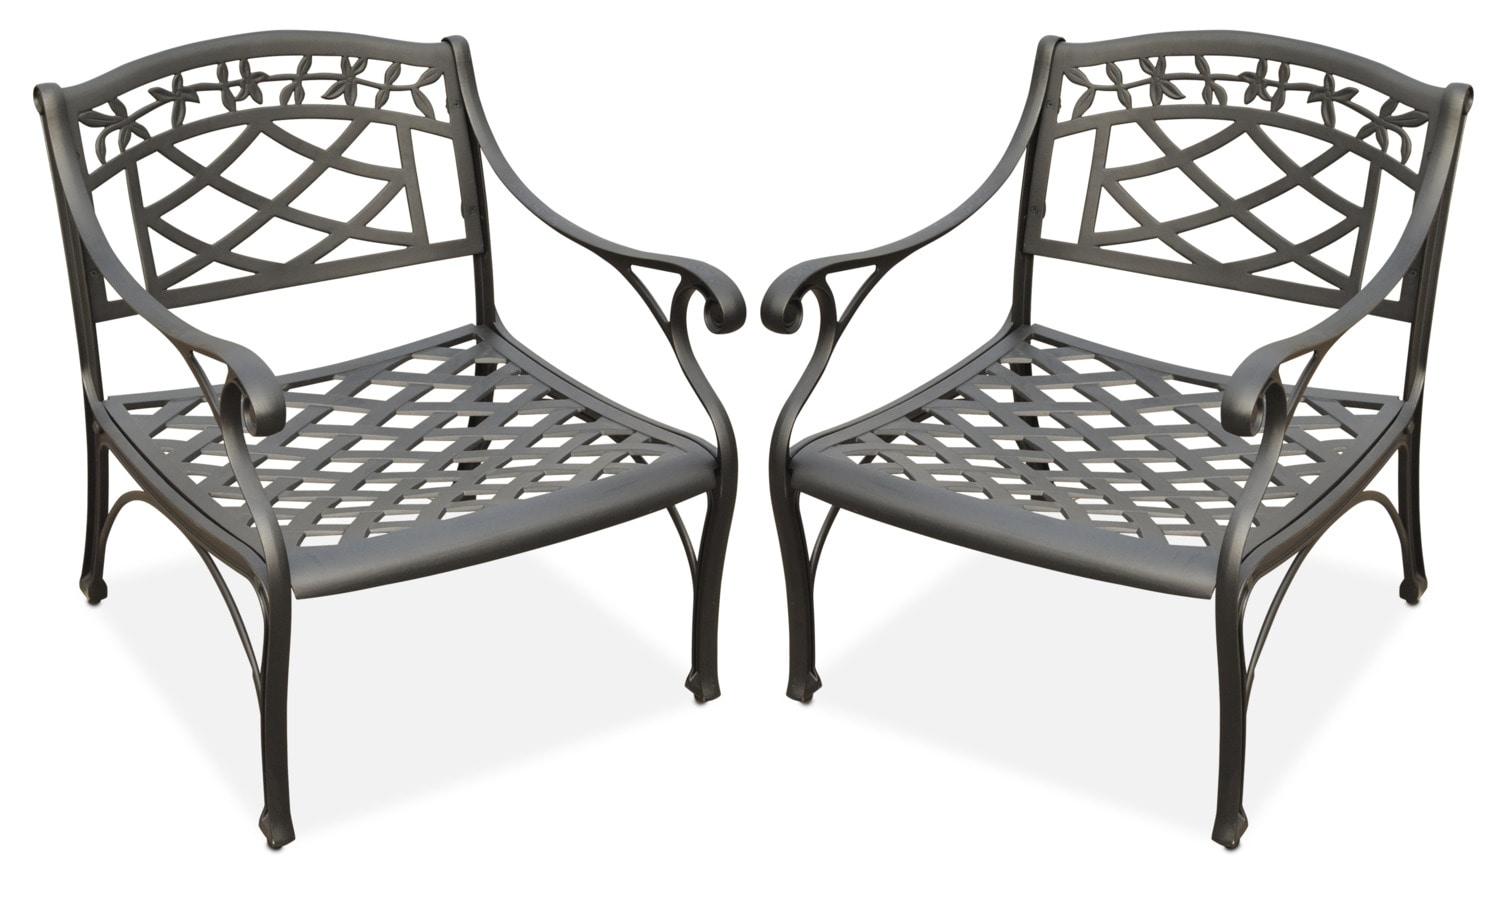 Hana Set Of 2 Outdoor Chairs   Black